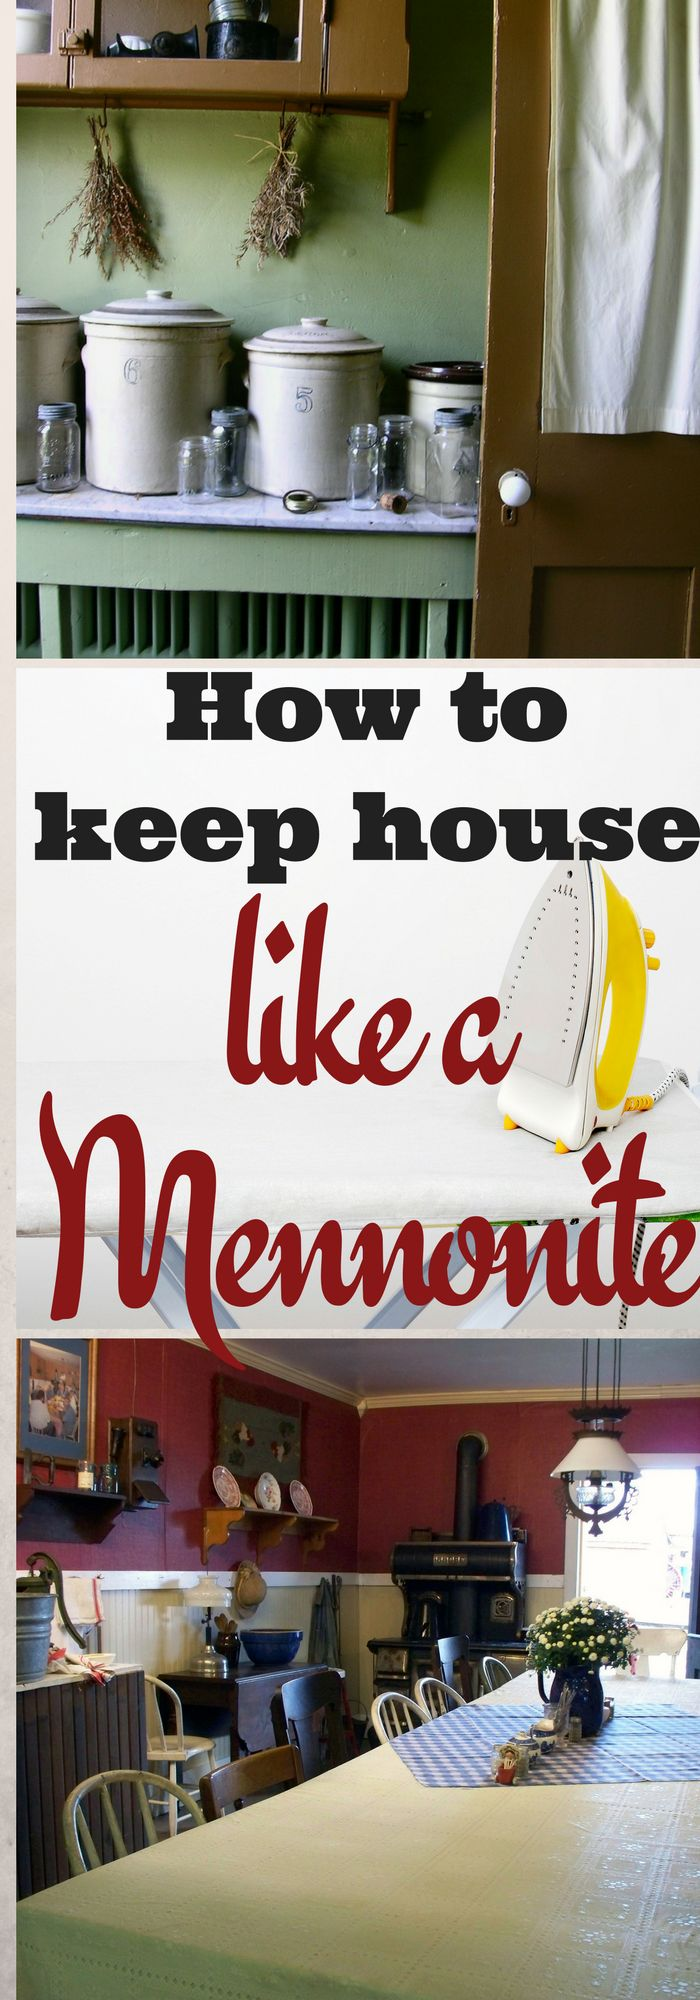 Learn these great homemaking lessons from my Old Order Mennonite friends and learn how to keep house the way they do.